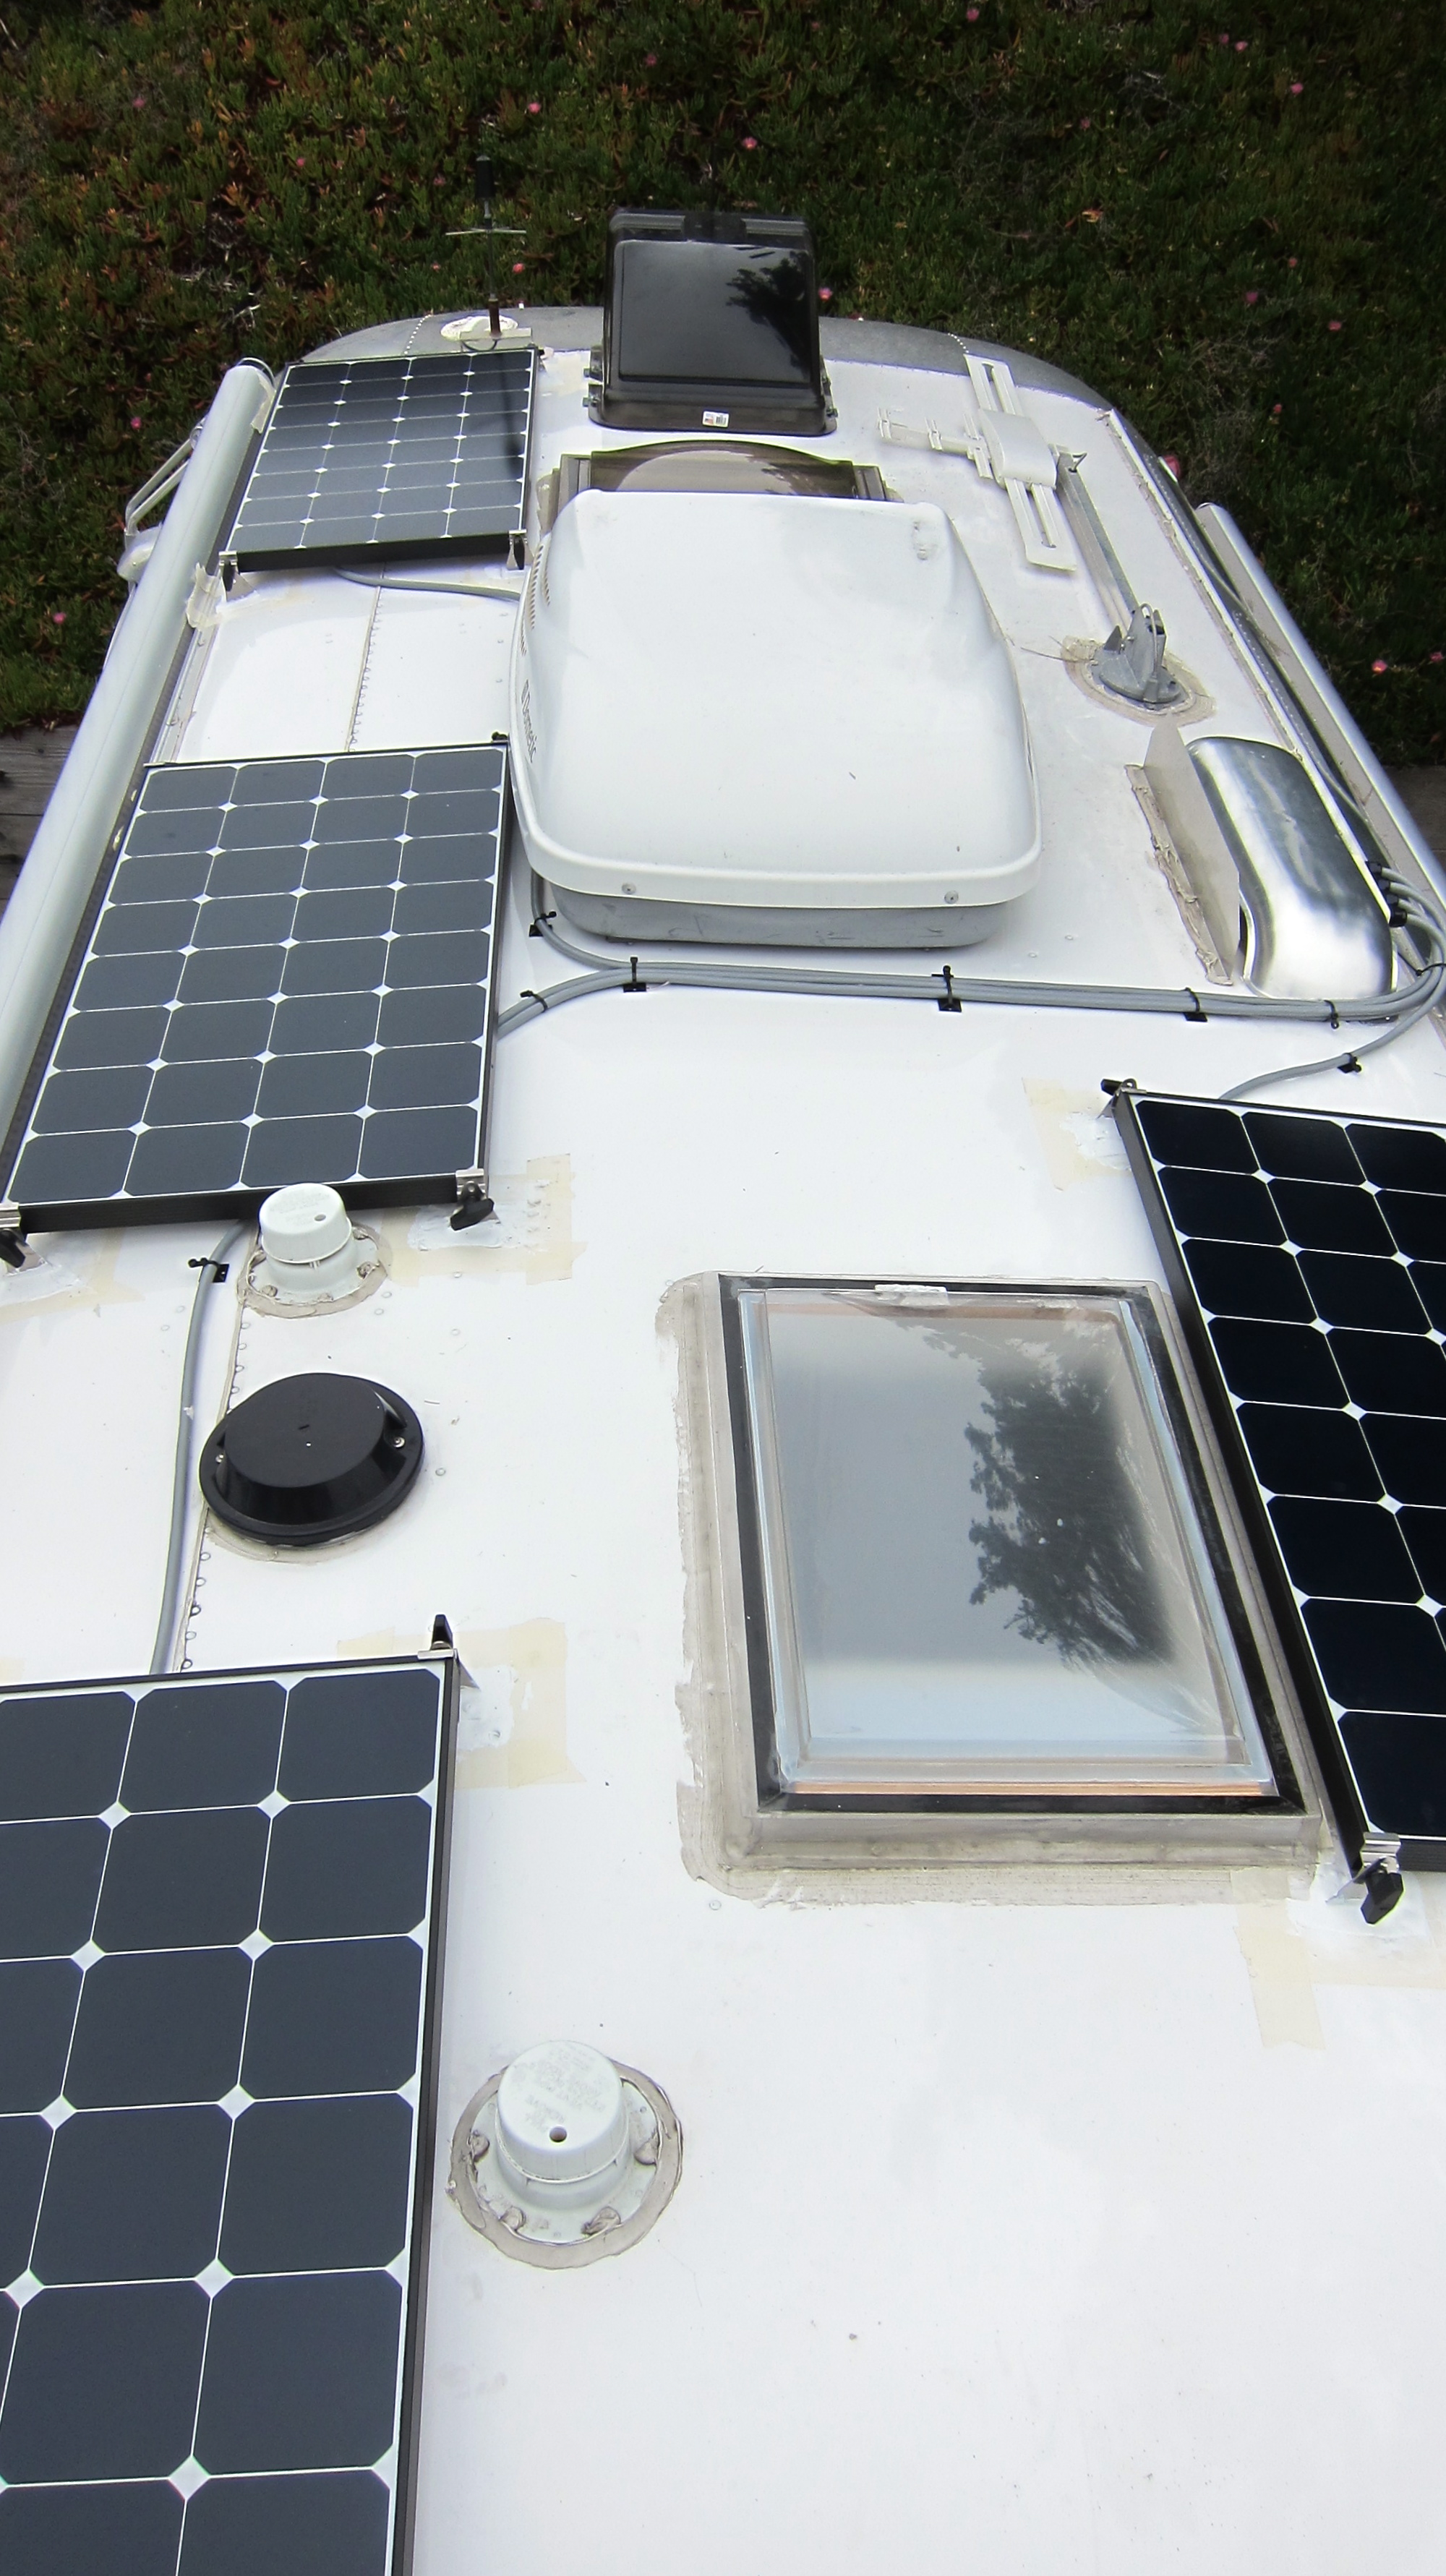 Airstream Solar Wiring Diagram Control Panel For Installation On Univolt Replacement